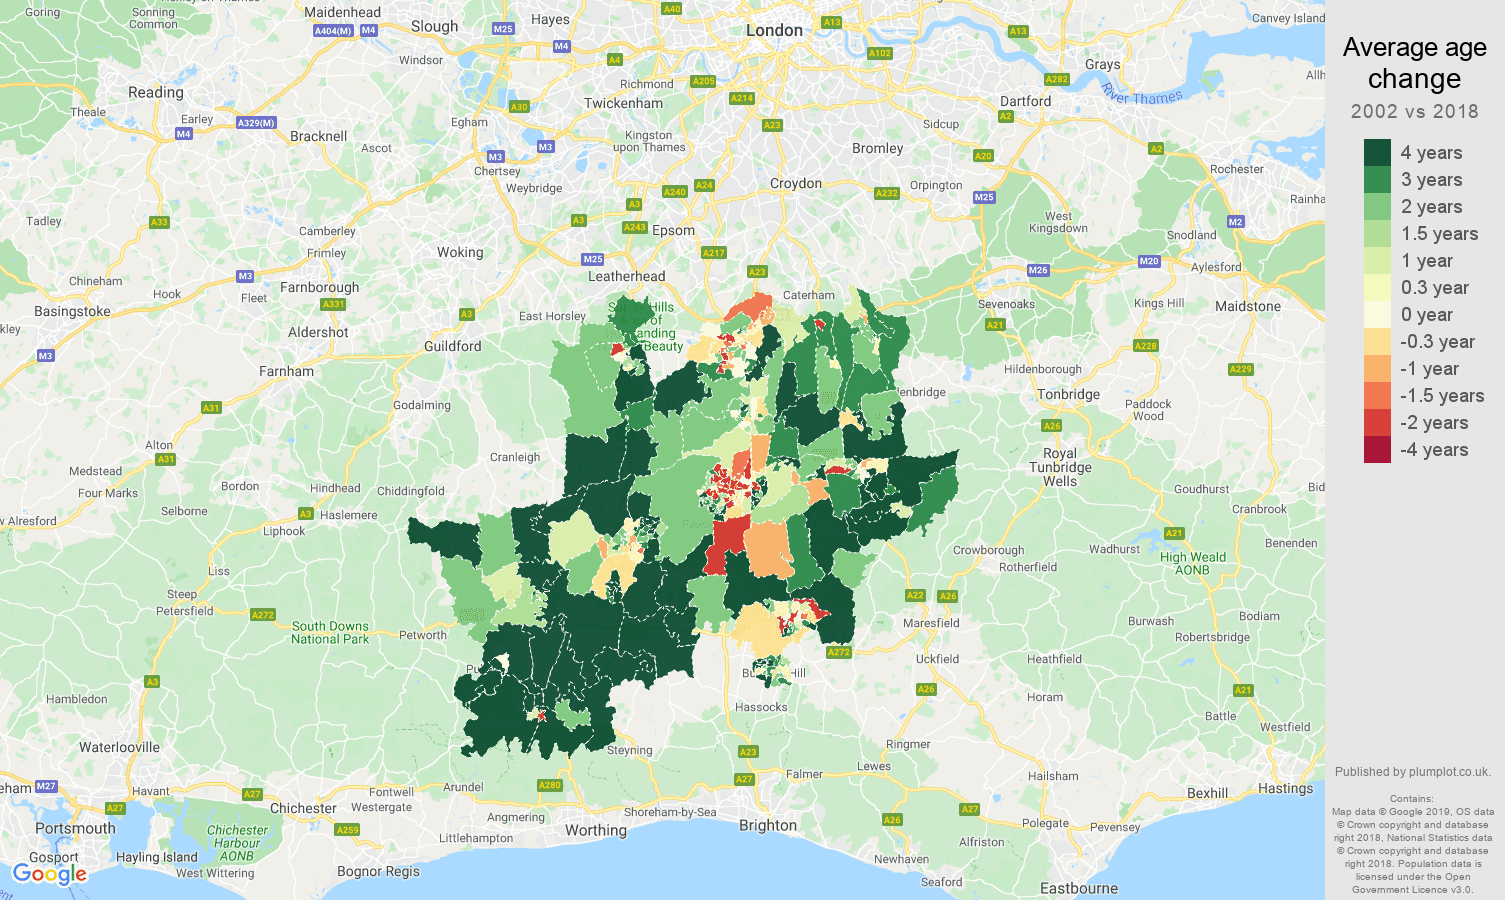 Redhill average age change map